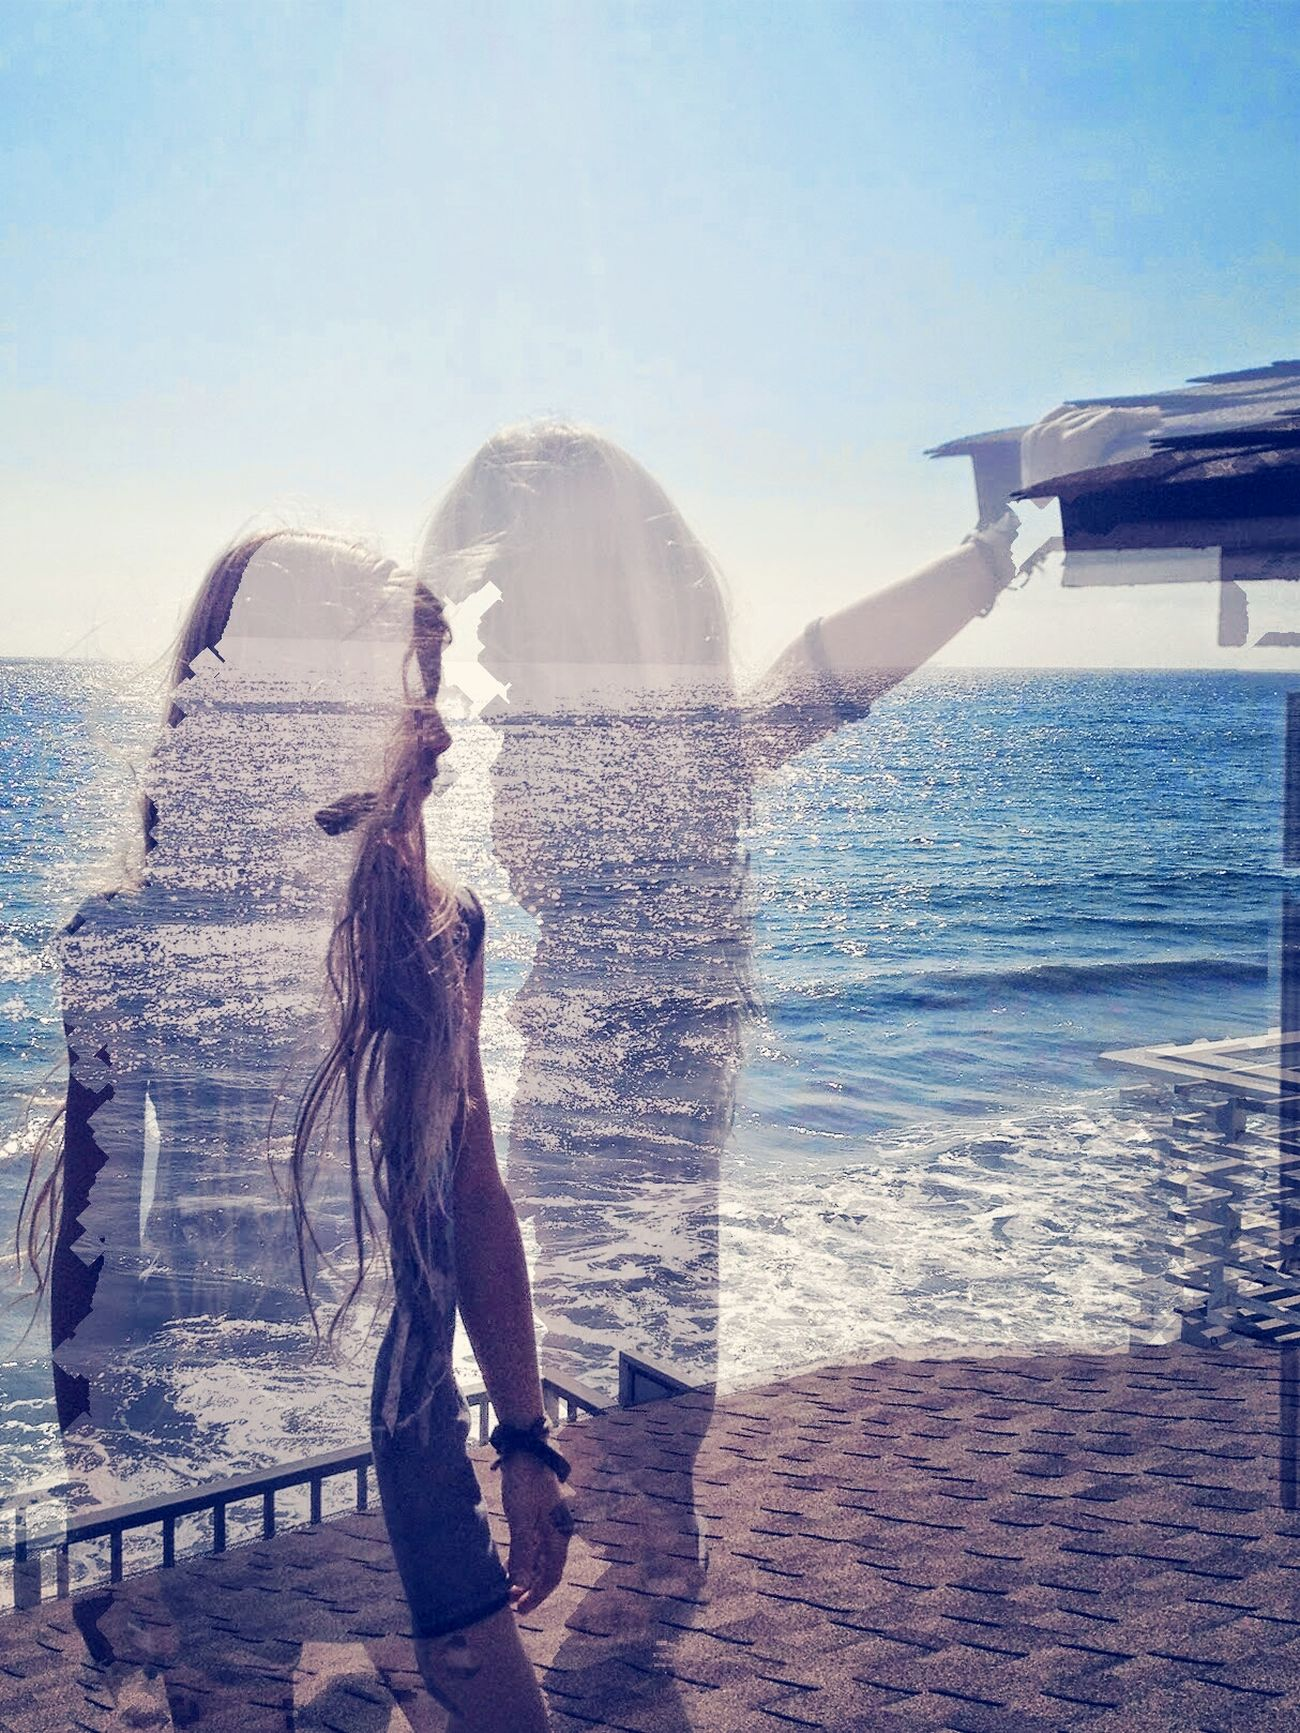 Urban escapes Shhh, to the sound of the waves reaching the ground. There, every view of the body's senses is full of stimuli. They overpower the spirit, removing all sense of worry or fear. My beachfront escape.. Authentic Moments Enjoying Life Beautiful Light Maximum Closeness